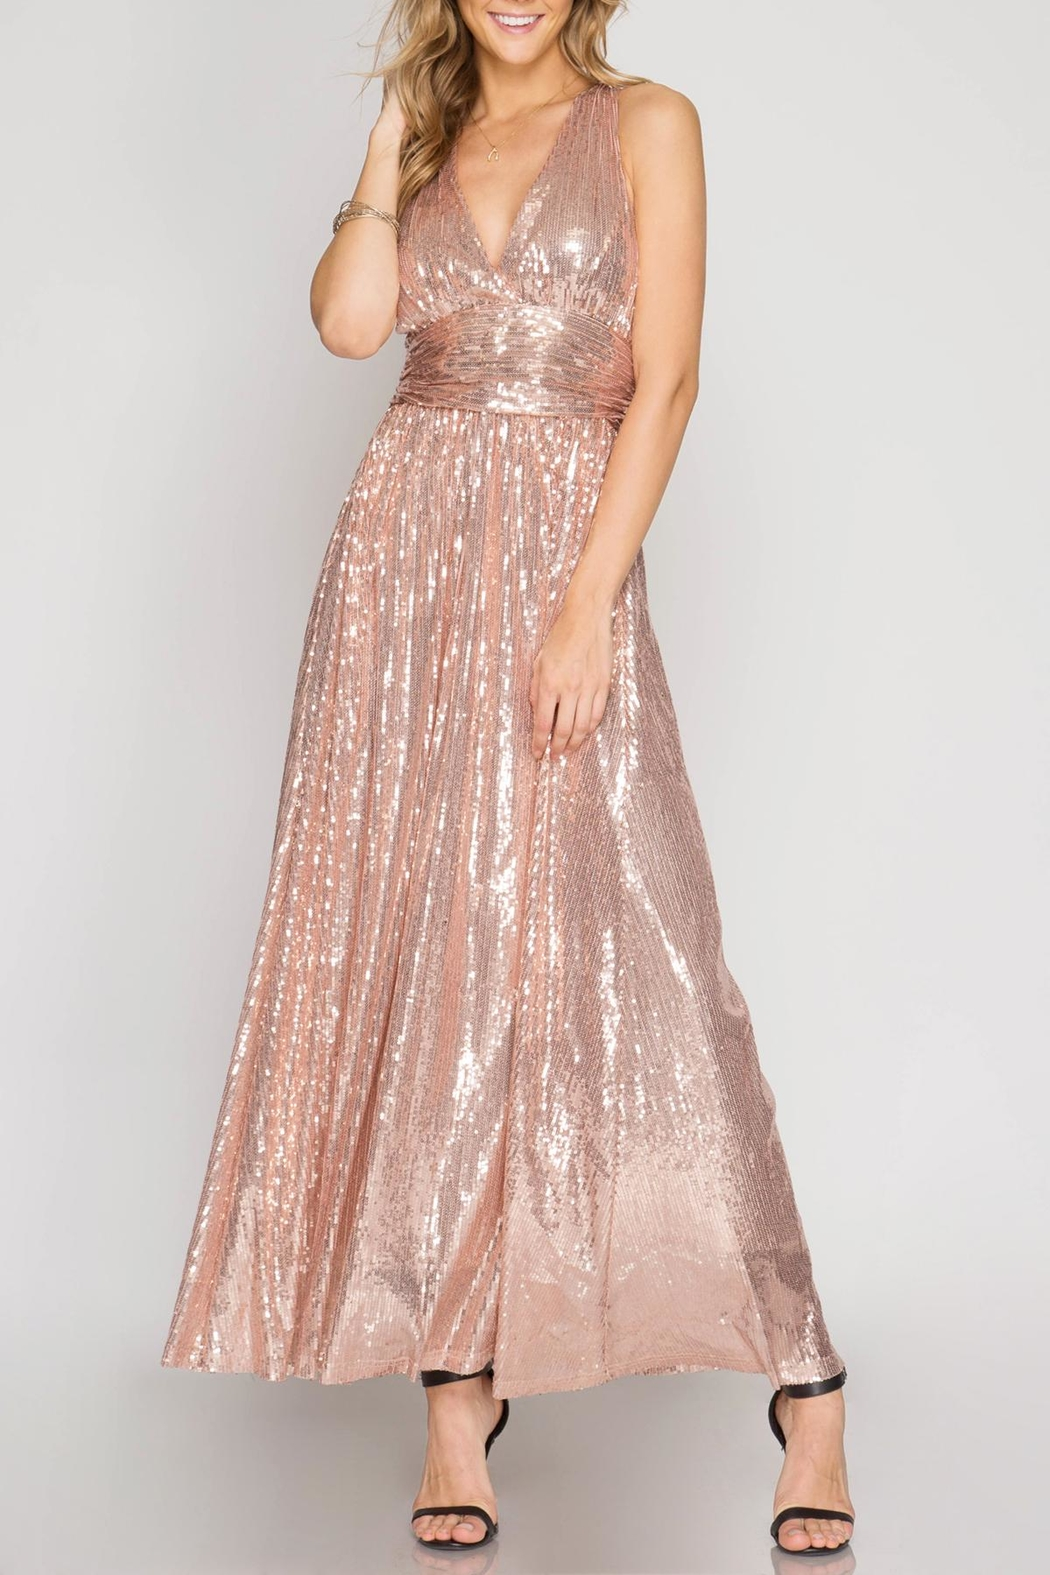 She + Sky Angelina Sequin Dress - Front Cropped Image